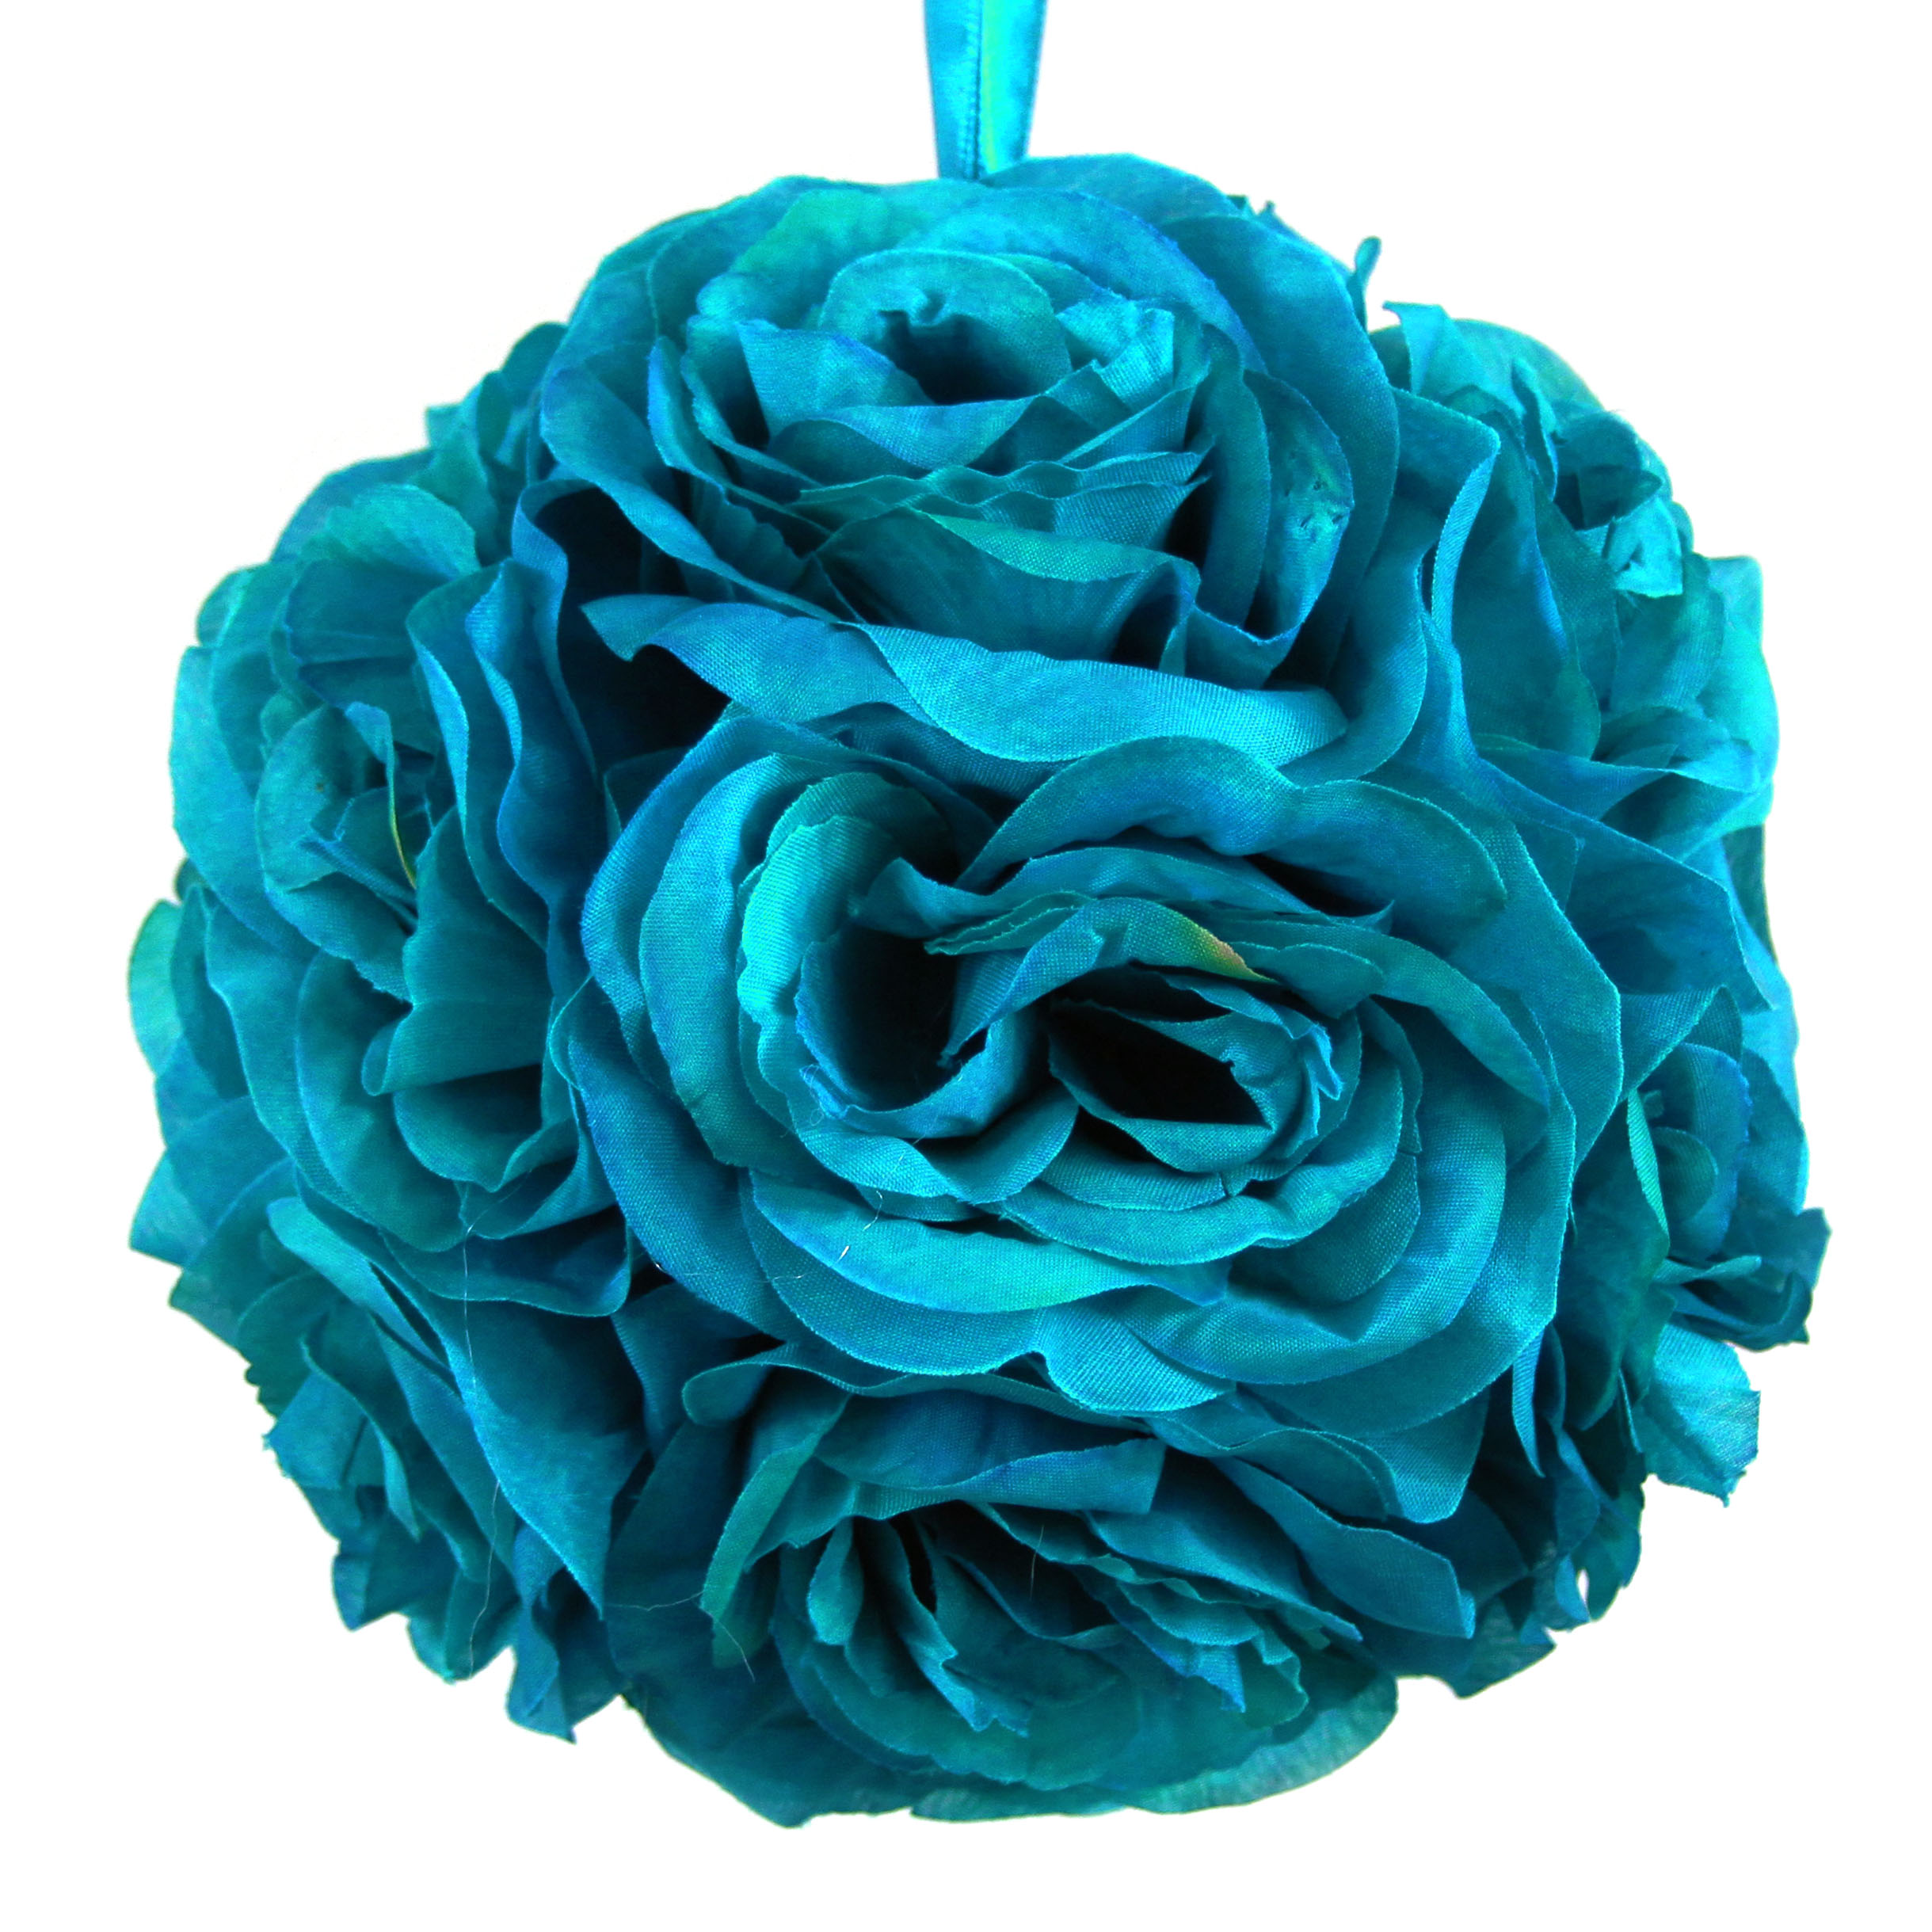 Koyal Rose Ball Wedding Flower Decoration, 6-Inch, Turquoise